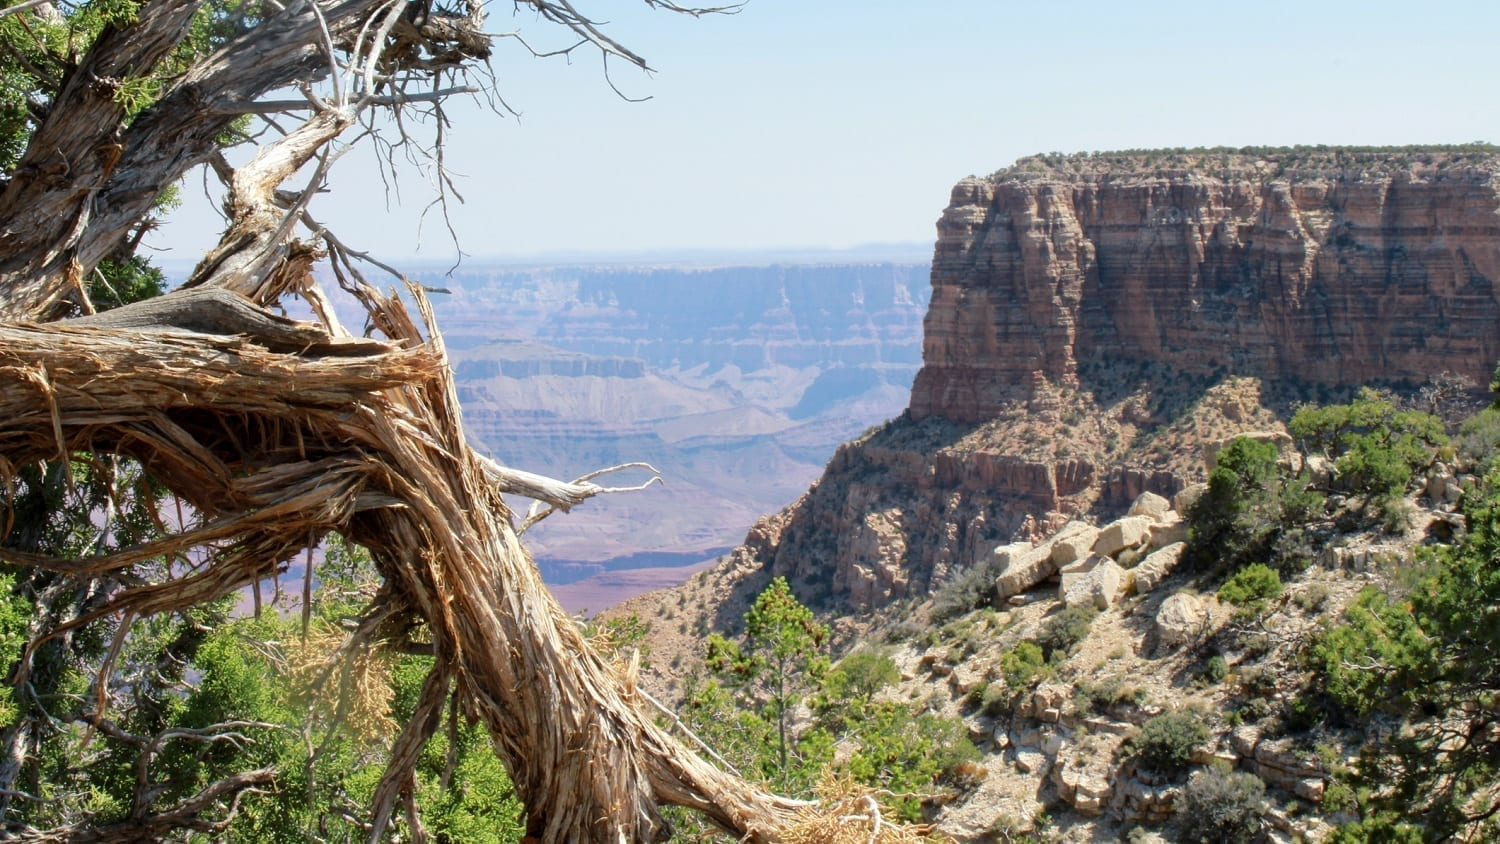 Grand Canyon view with broken dead tree in foreground: Photo 27825853 © Gary Arbach | Dreamstime.com